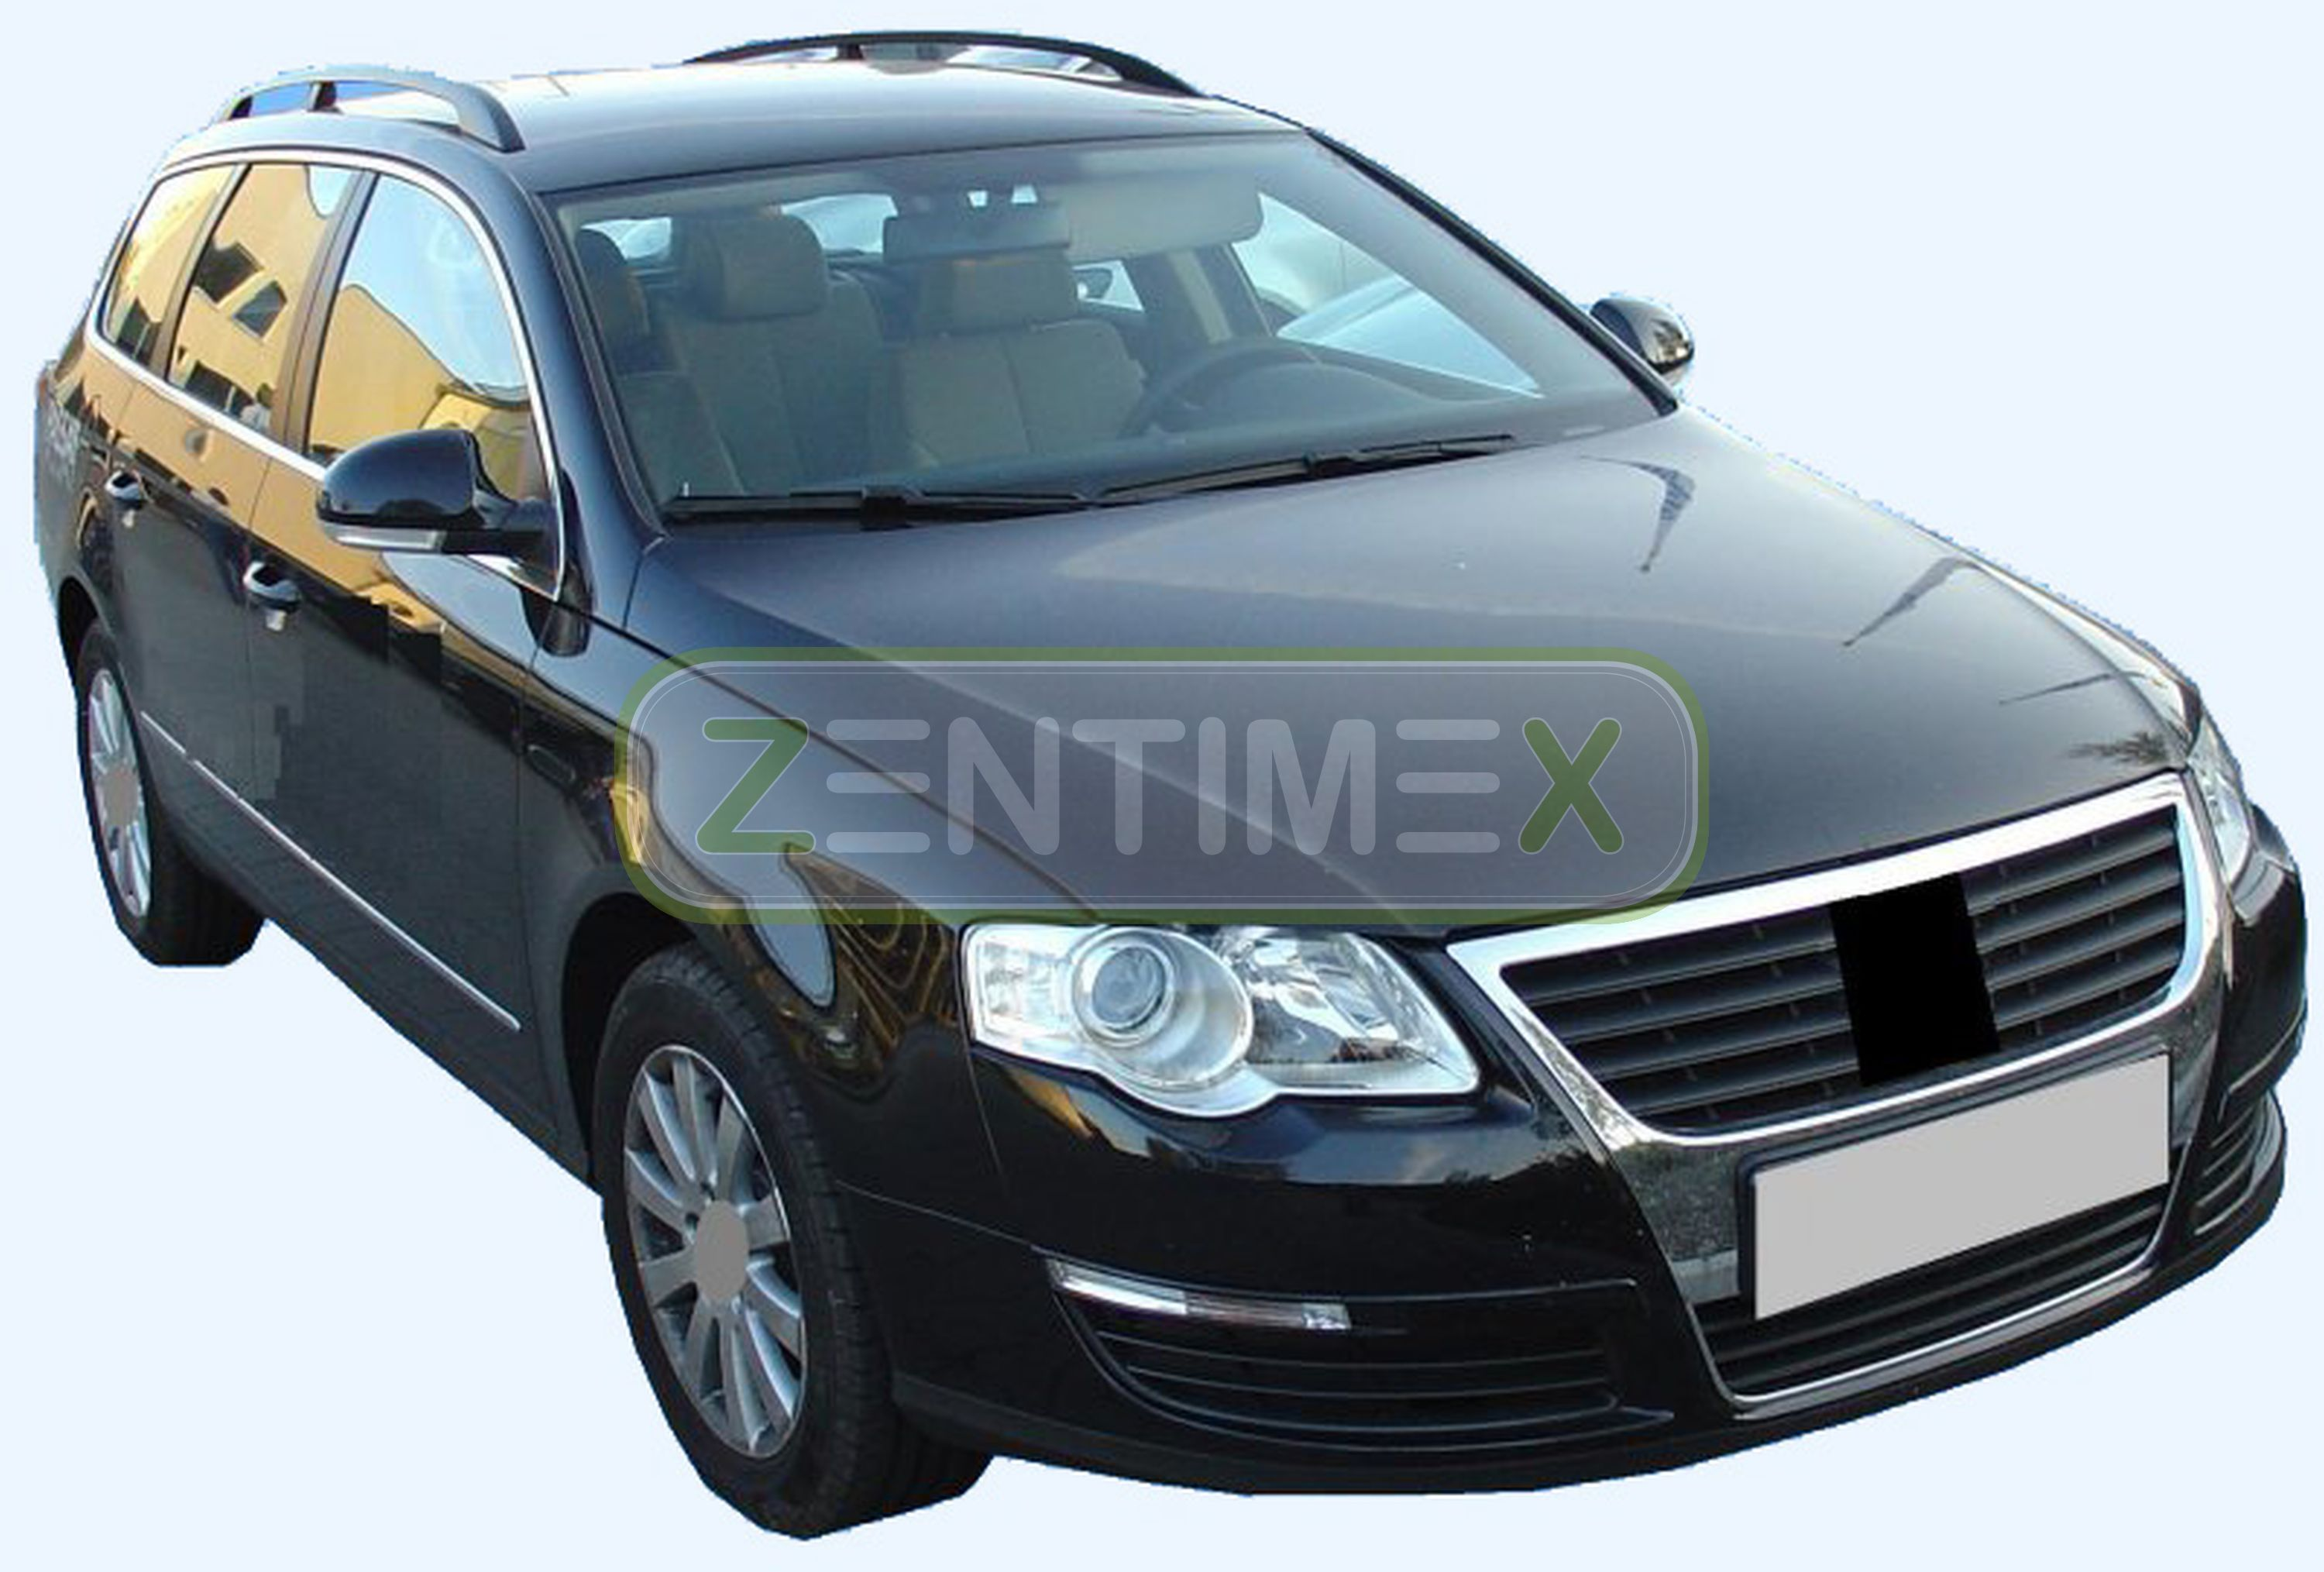 kofferraumwanne f r vw volkswagen passat trendline b7 3c. Black Bedroom Furniture Sets. Home Design Ideas